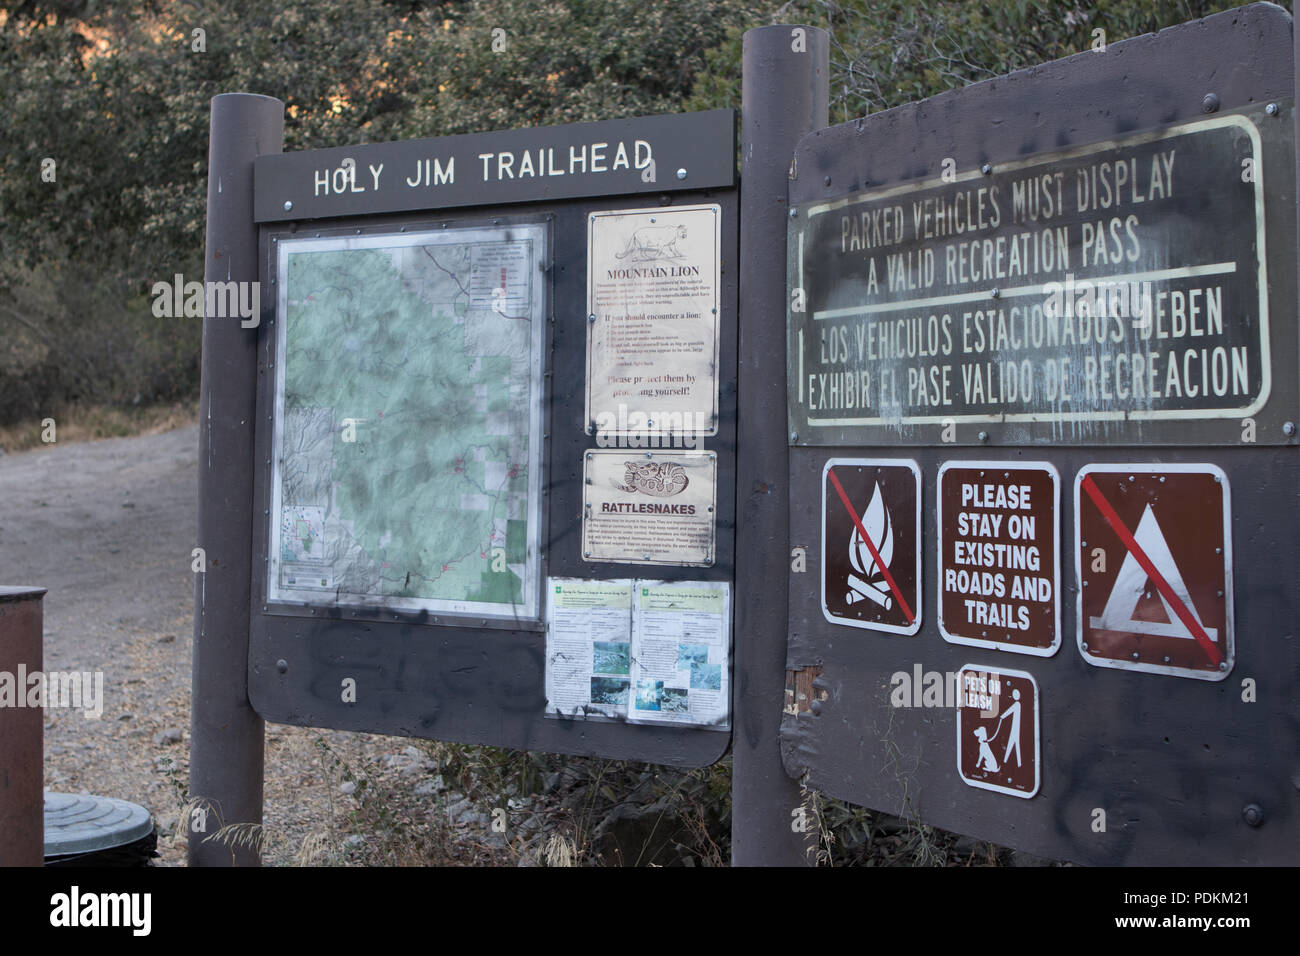 Holy Jim trailhead sign in the Cleveland national forest Orange County California prior to the Holy Fire of August 2018 - Stock Image